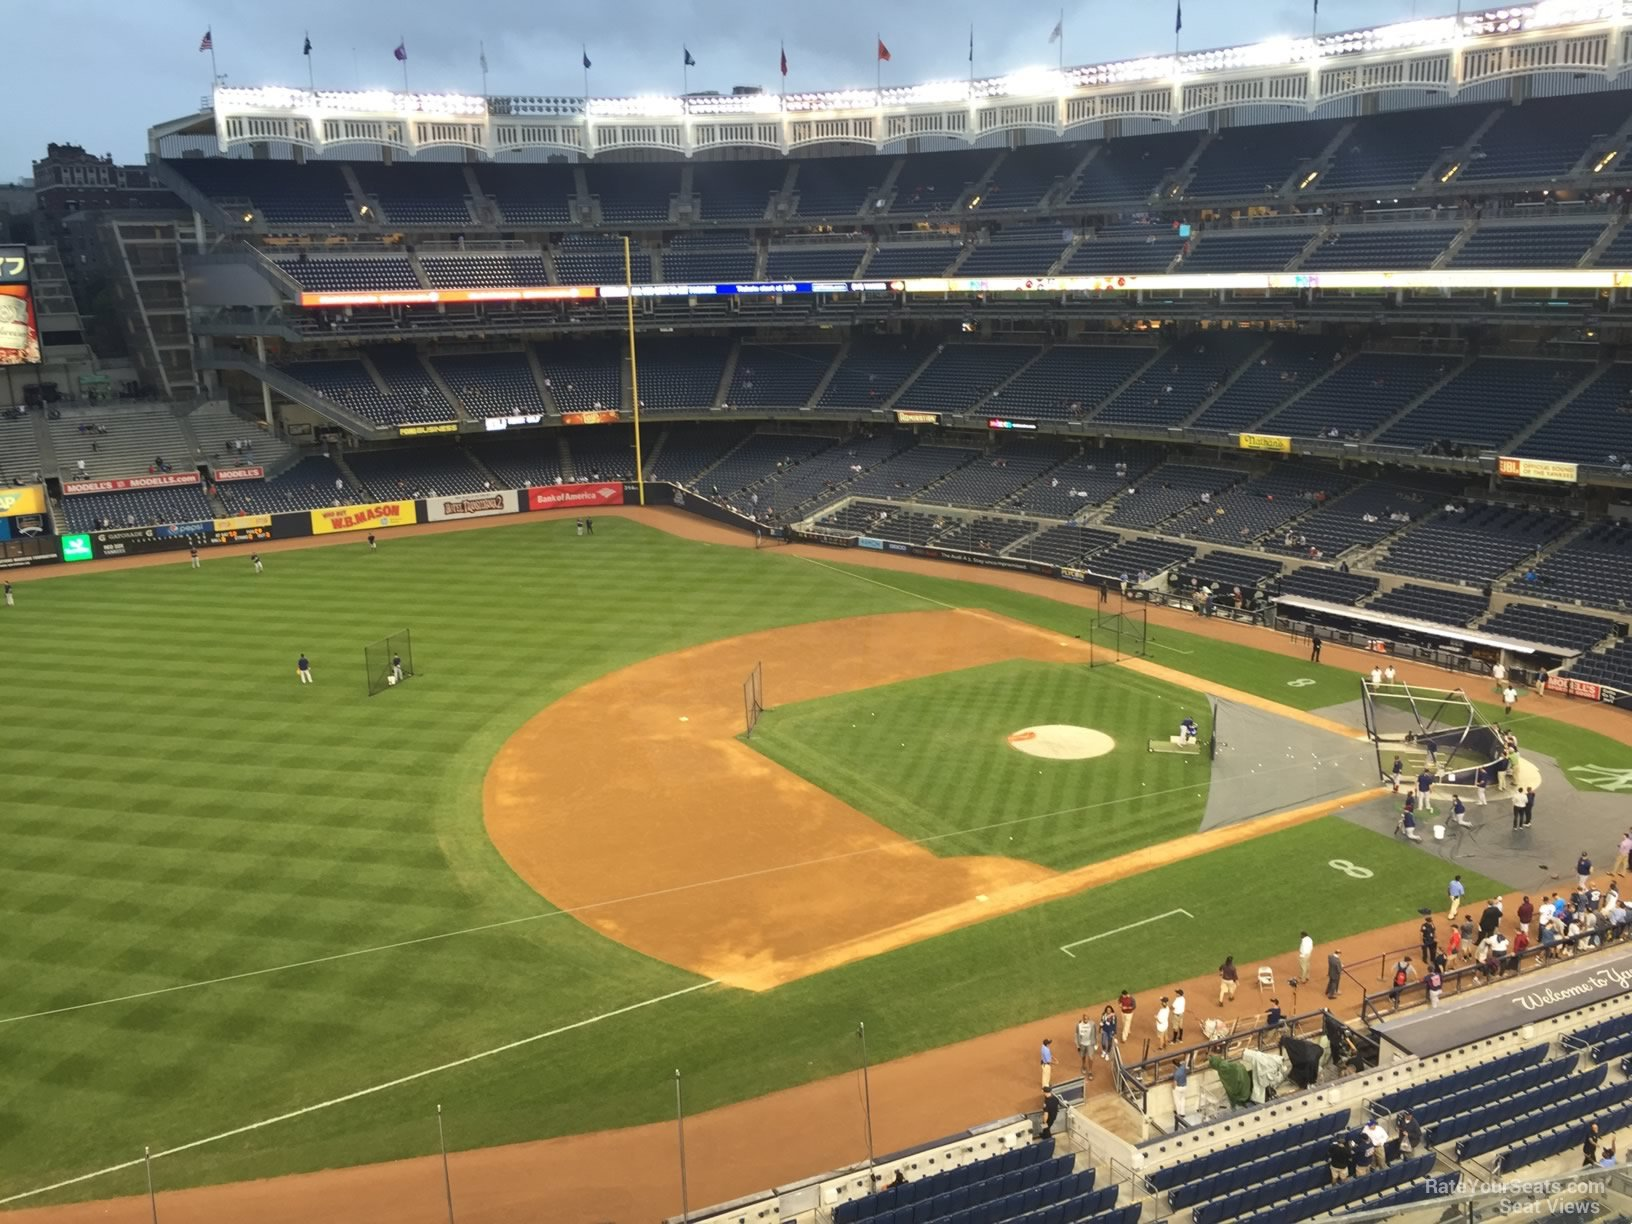 New York Yankees Seat View for Yankee Stadium Section 327, Row 6